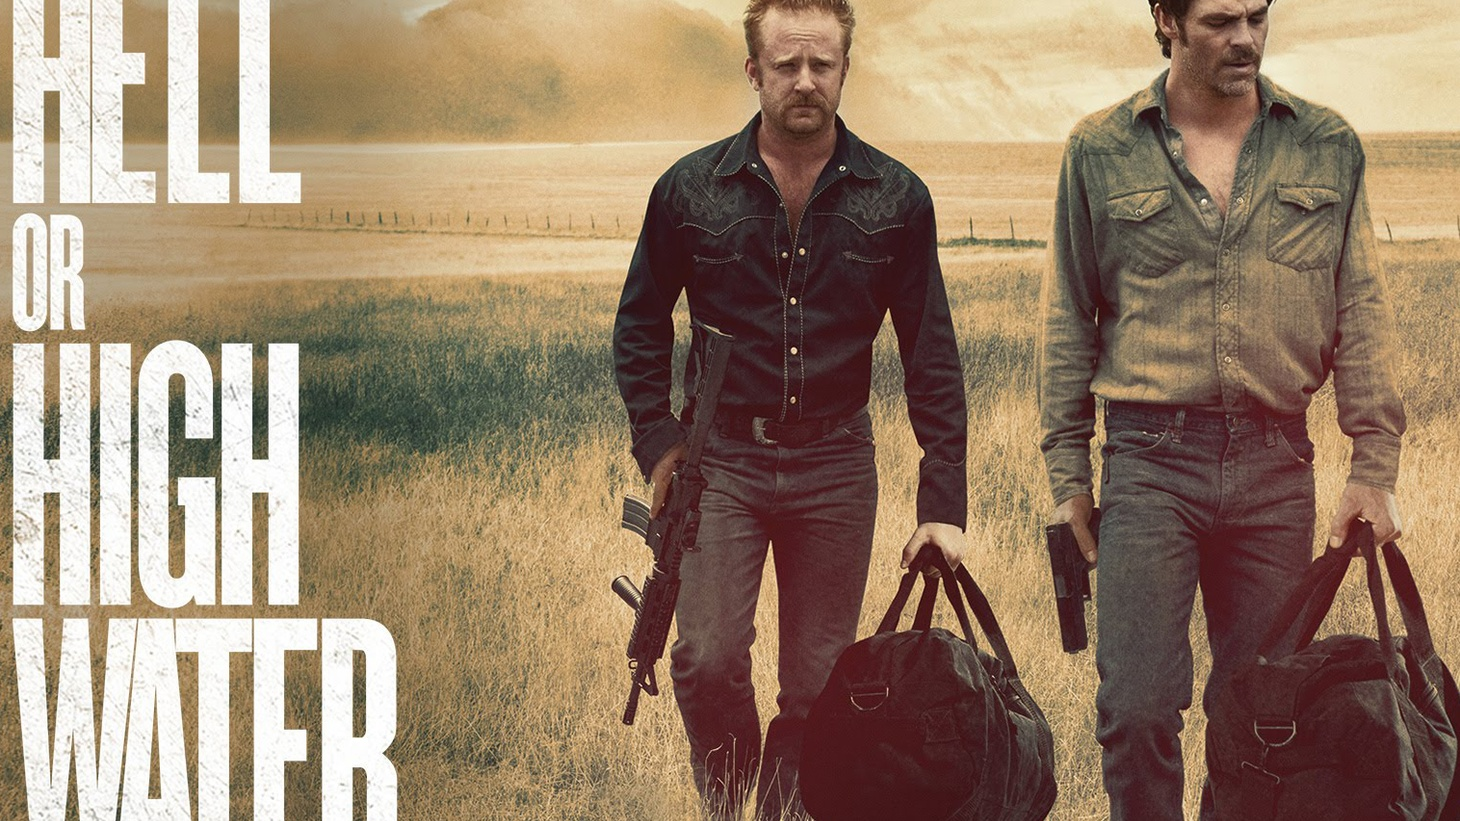 Hell or High Water is one of the most enjoyable films I've seen in a very long time, following two brothers on  a  bank-robbing spree in a desolate part of west Texas where the banks themselves are seen as robbers.